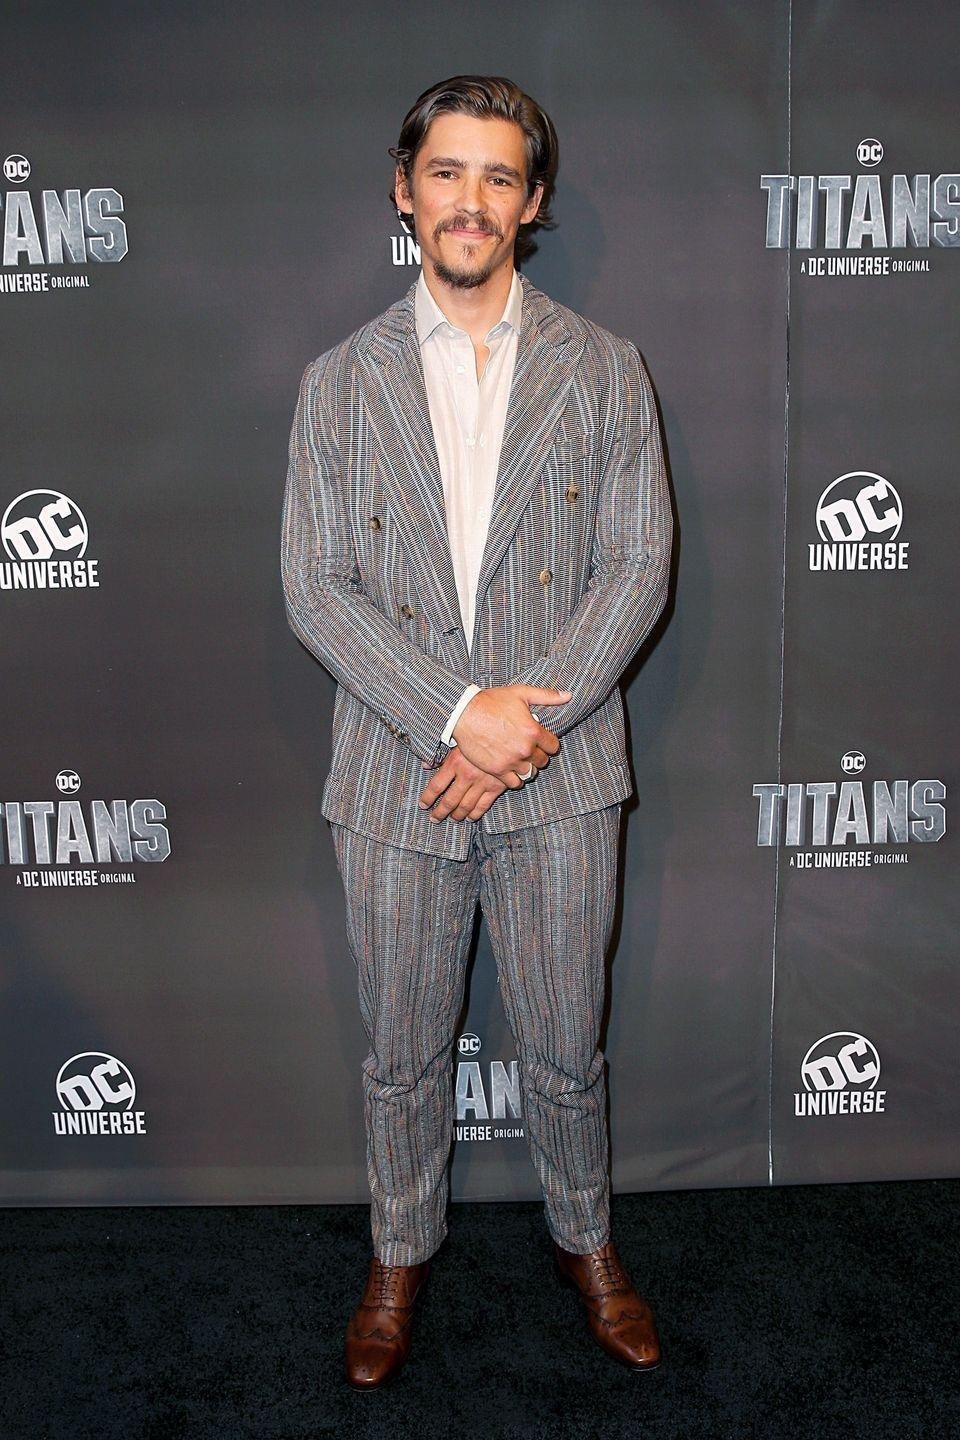 <p>Thwaites' most recently recognized for his roles in <em>Pirates of the Caribbean: Dead Men Tell No Tales</em> and <em>Titans</em>, but the Cairns, Queensland native's been making a splash in Australian film and TV for years. </p>